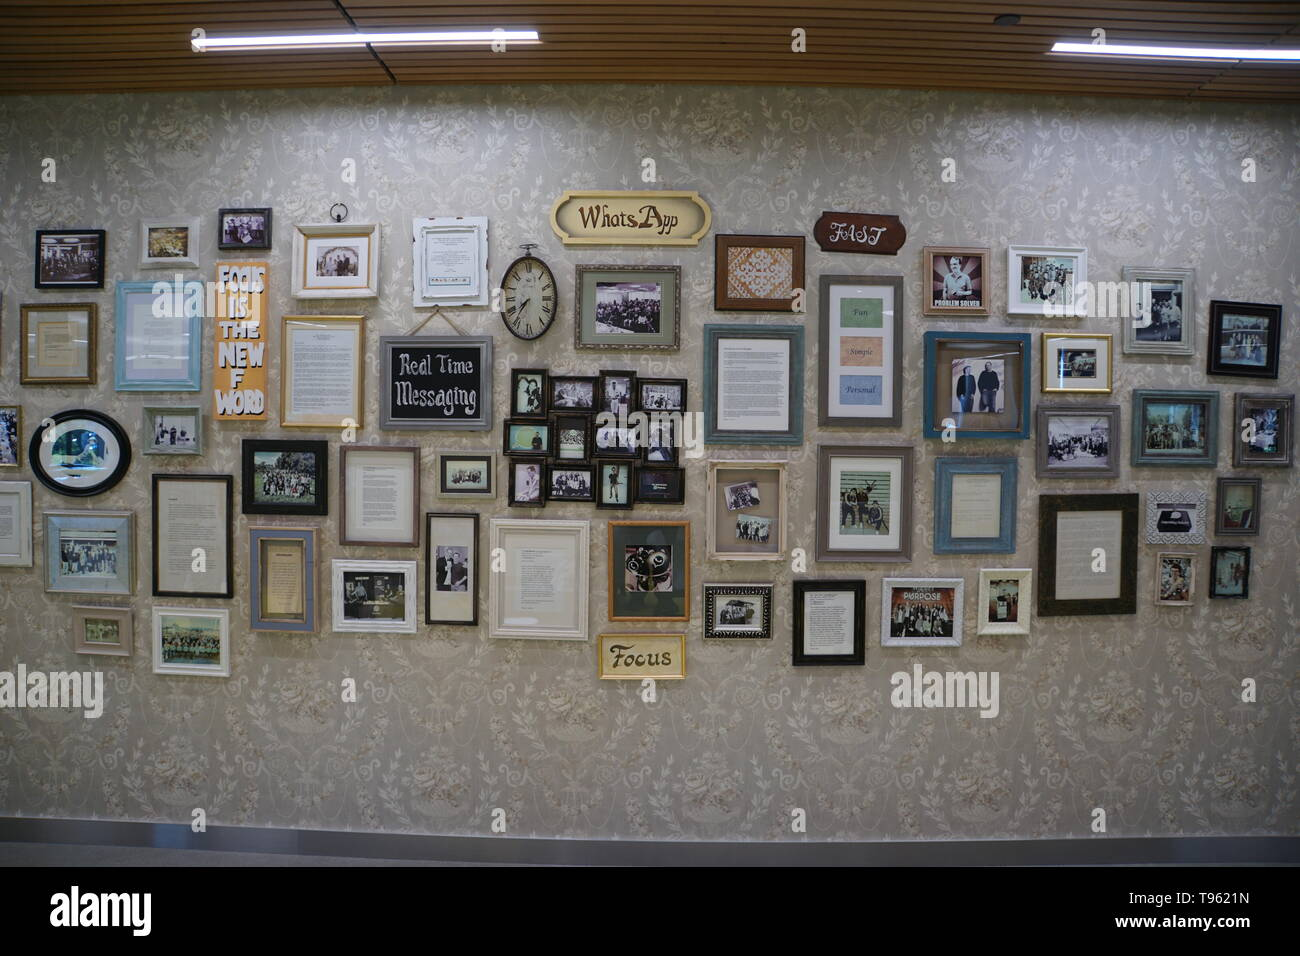 09 May 2019, US, Menlo Park: 'Memory Wall' at WhatsApp's corporate headquarters at Facebook's corporate headquarters in Menlo Park. The picture frames document important steps in the company's development. Photo: Christoph Dernbach/dpa - Stock Image